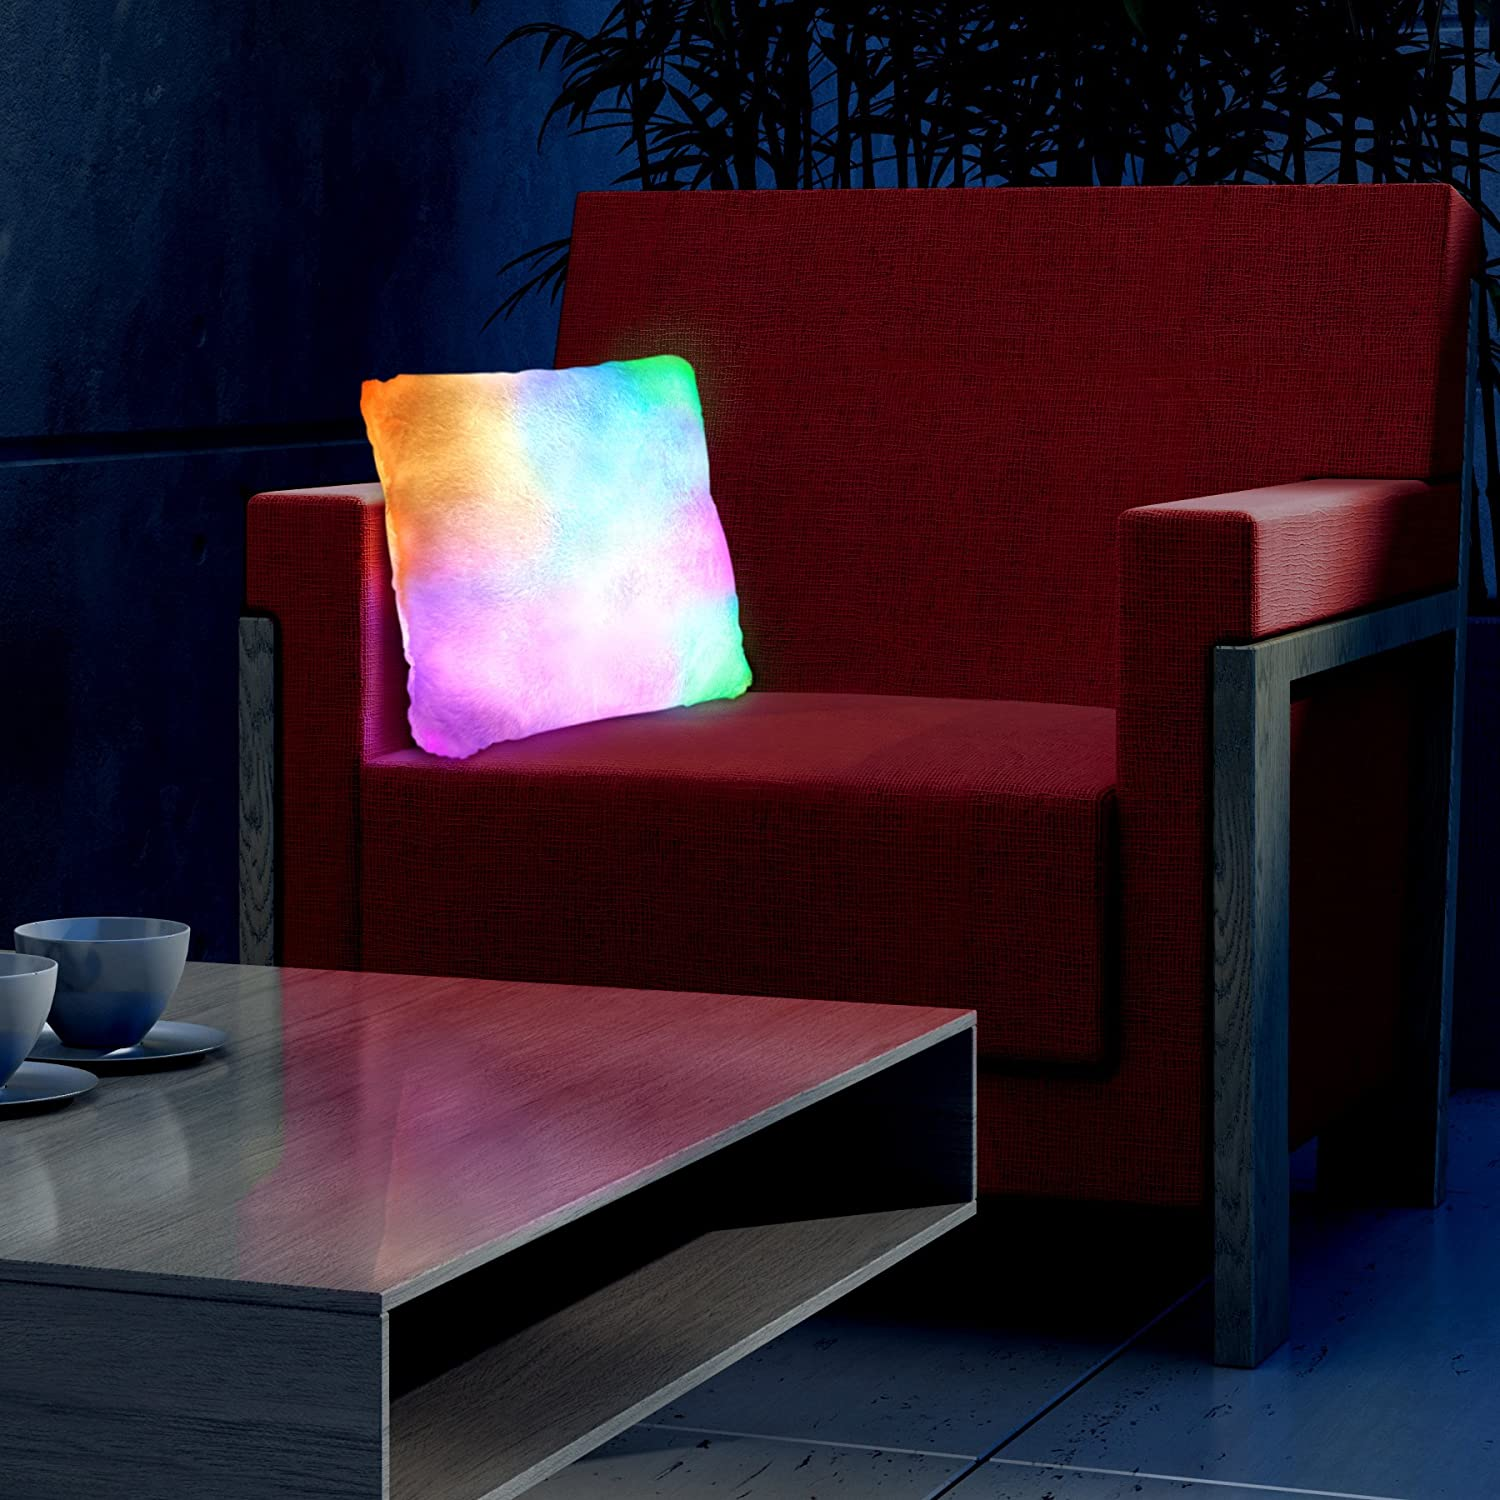 Amazon.com : Light Up Pillow With Slow Color Changing LED : Patio, Lawn U0026  Garden